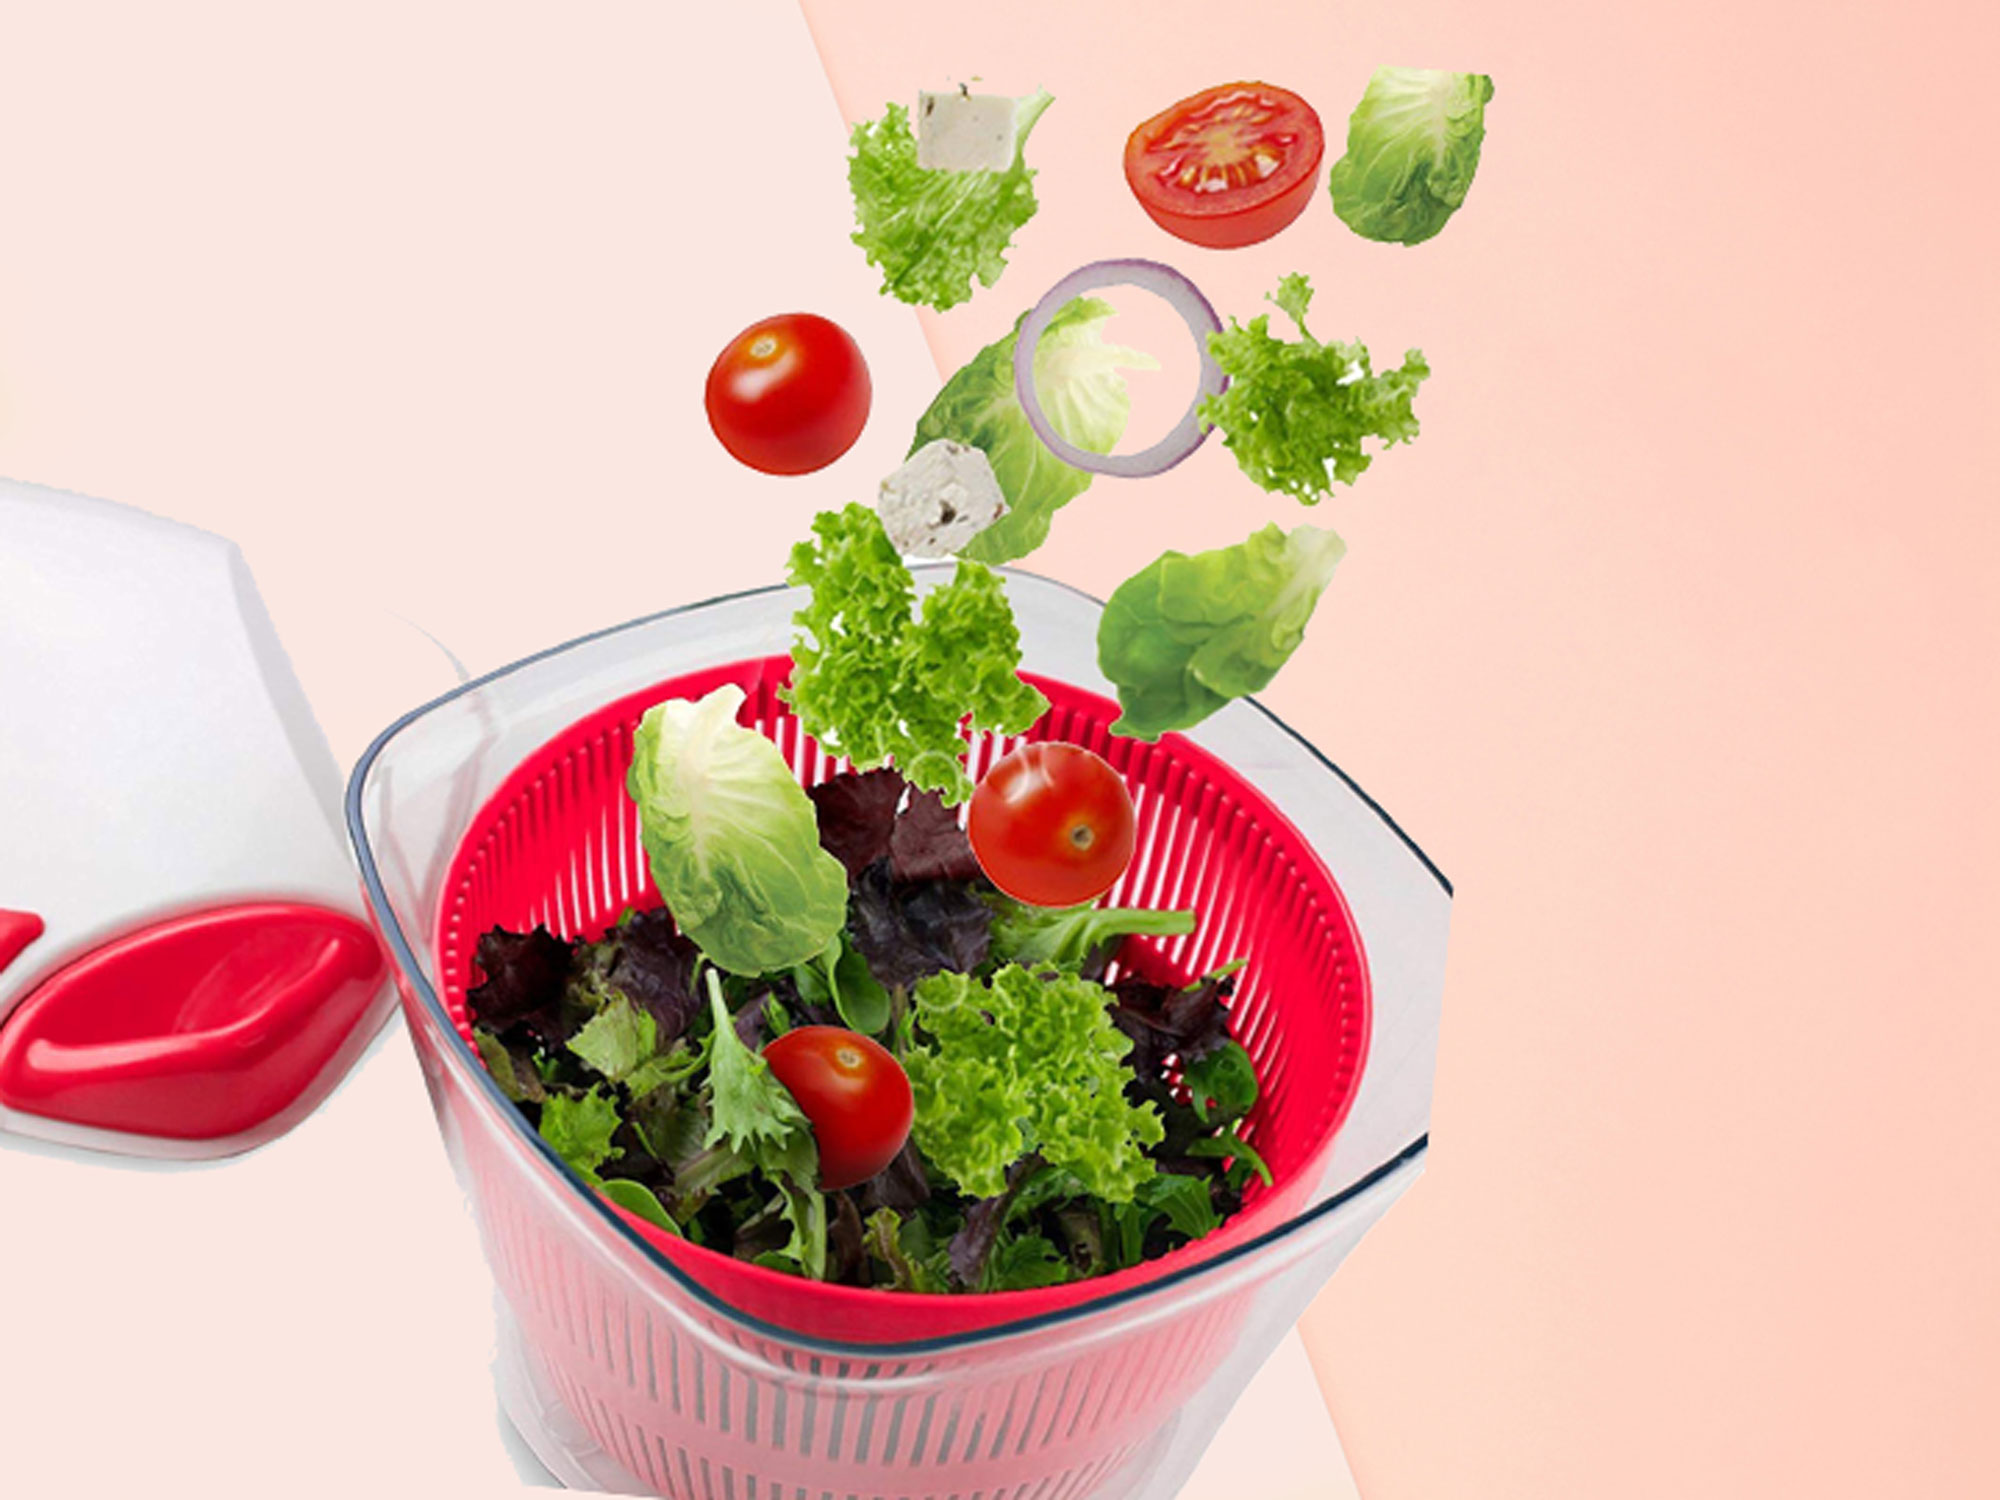 This Award-Winning Salad Spinner Is Climbing Amazon's Best-Selling Charts